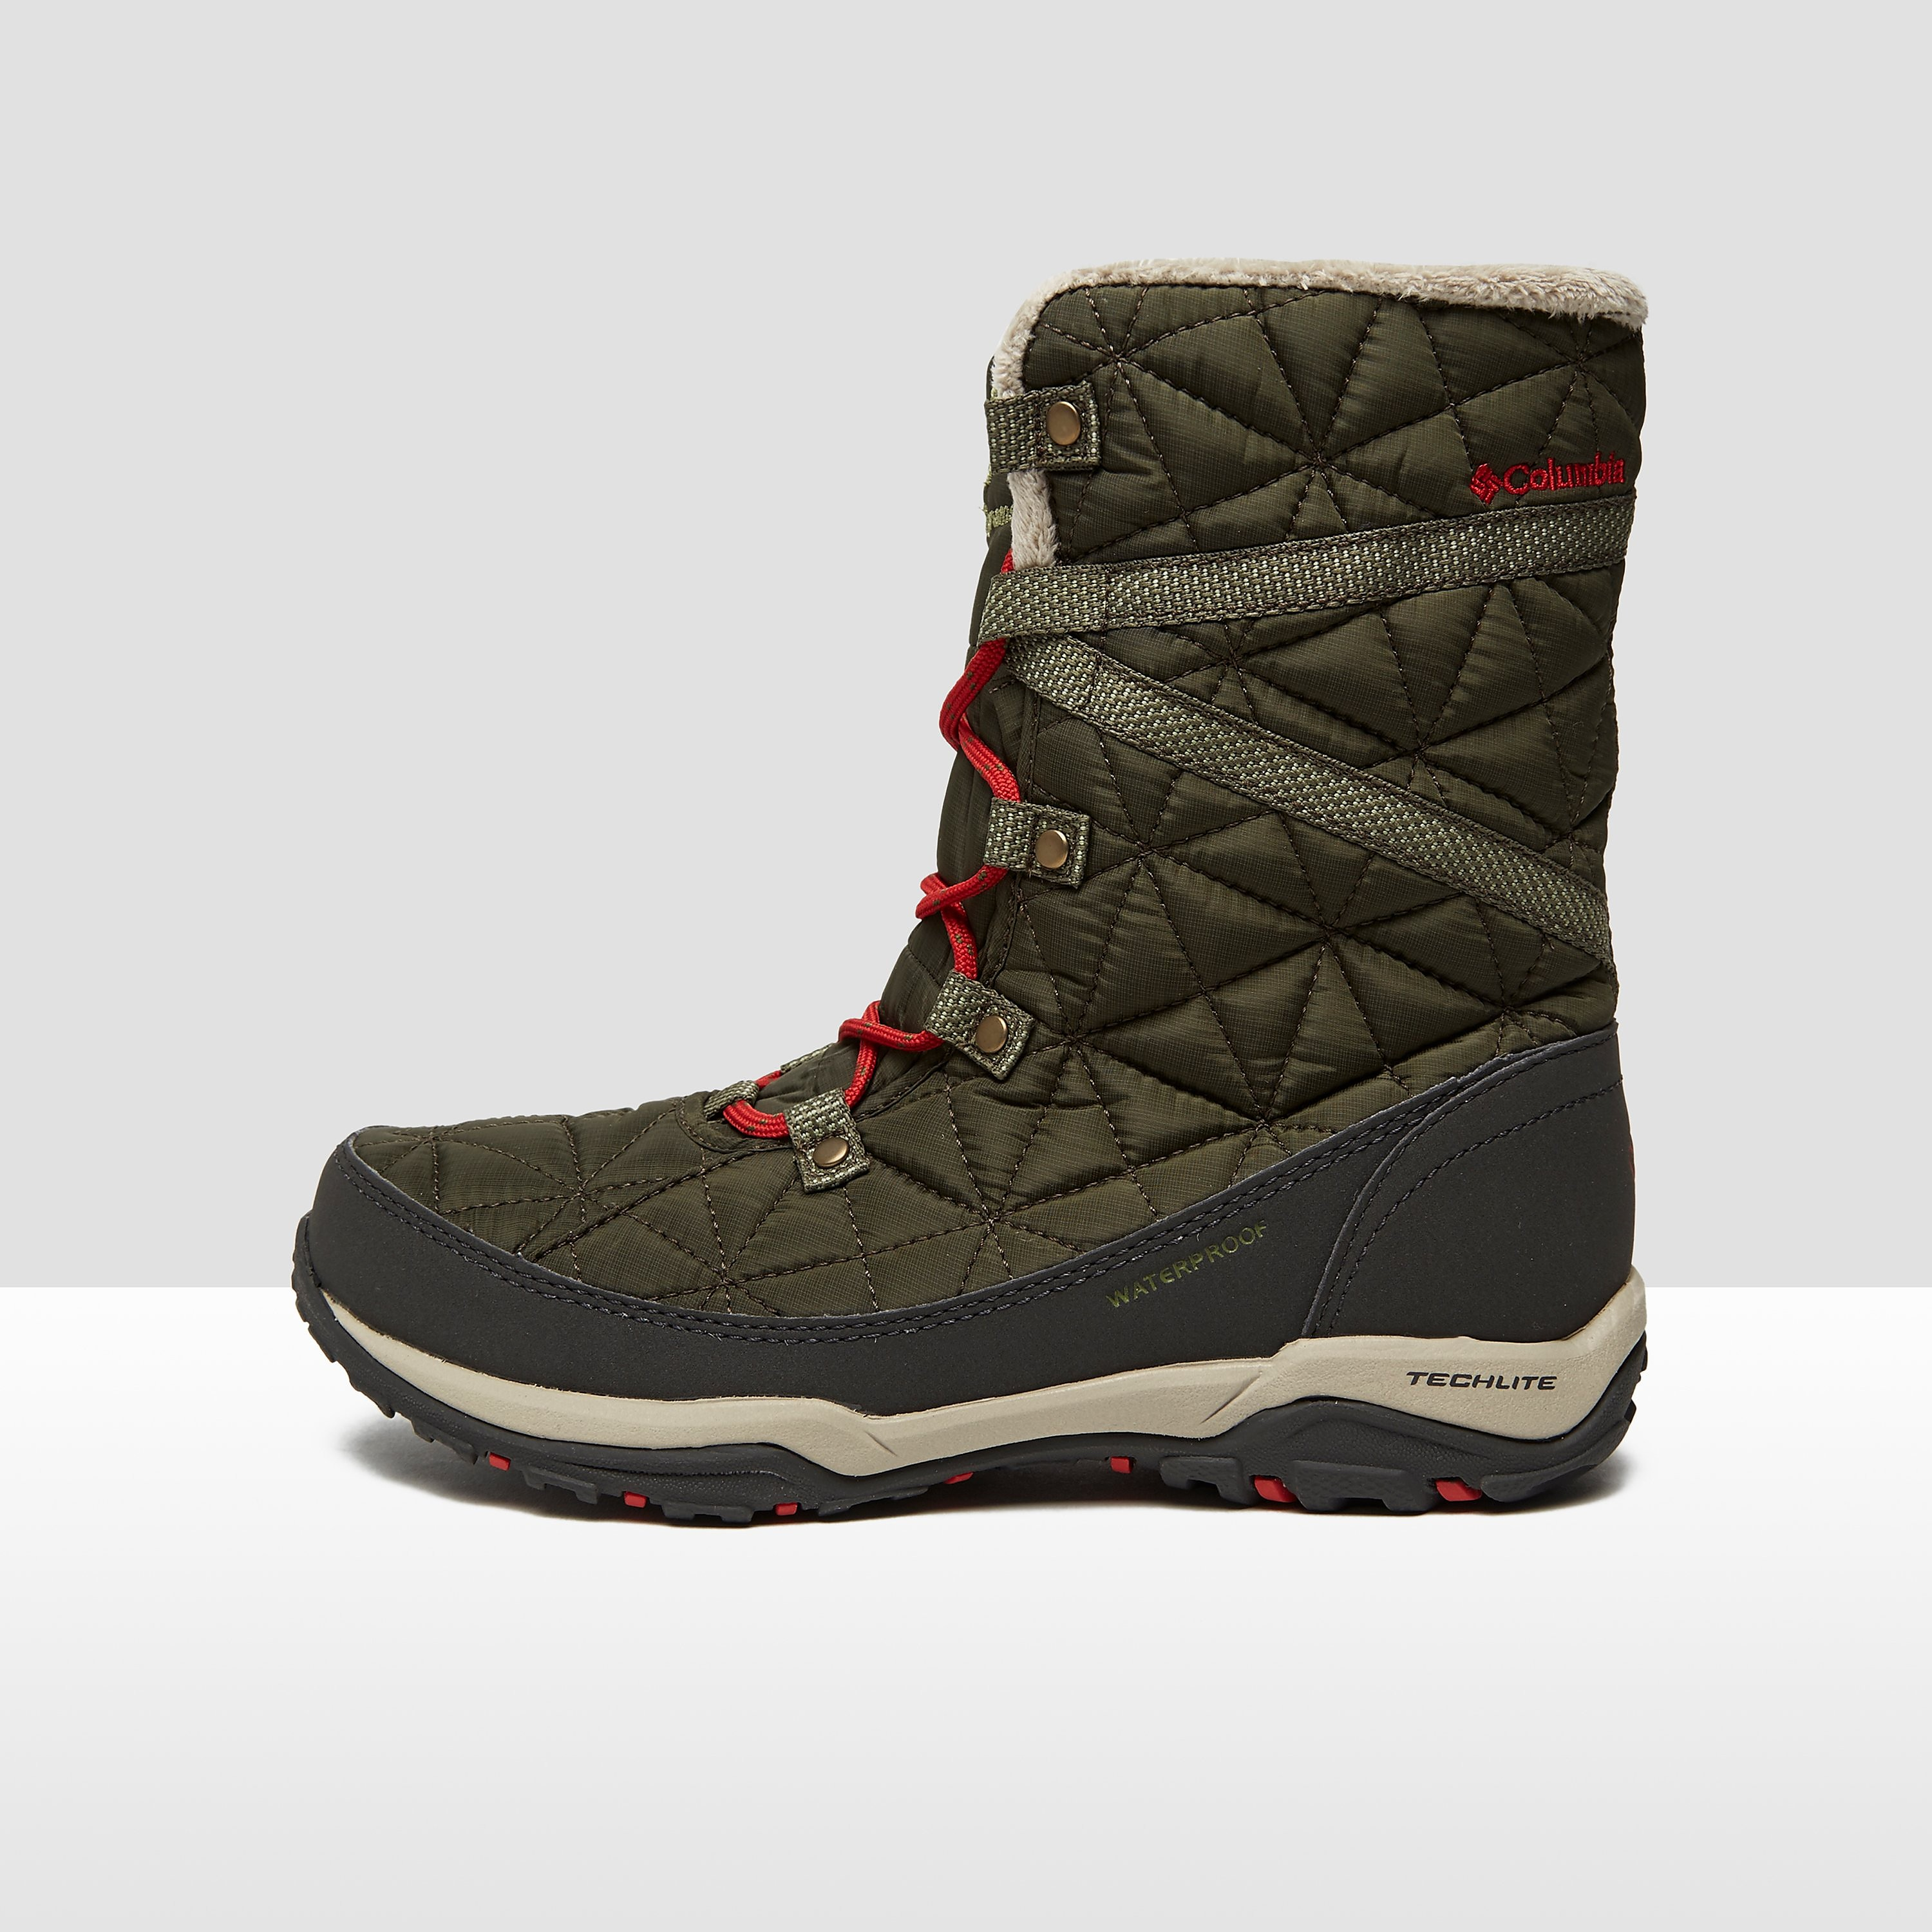 Columbia Women's Loveland Mid Omni-Heat Winter Boots